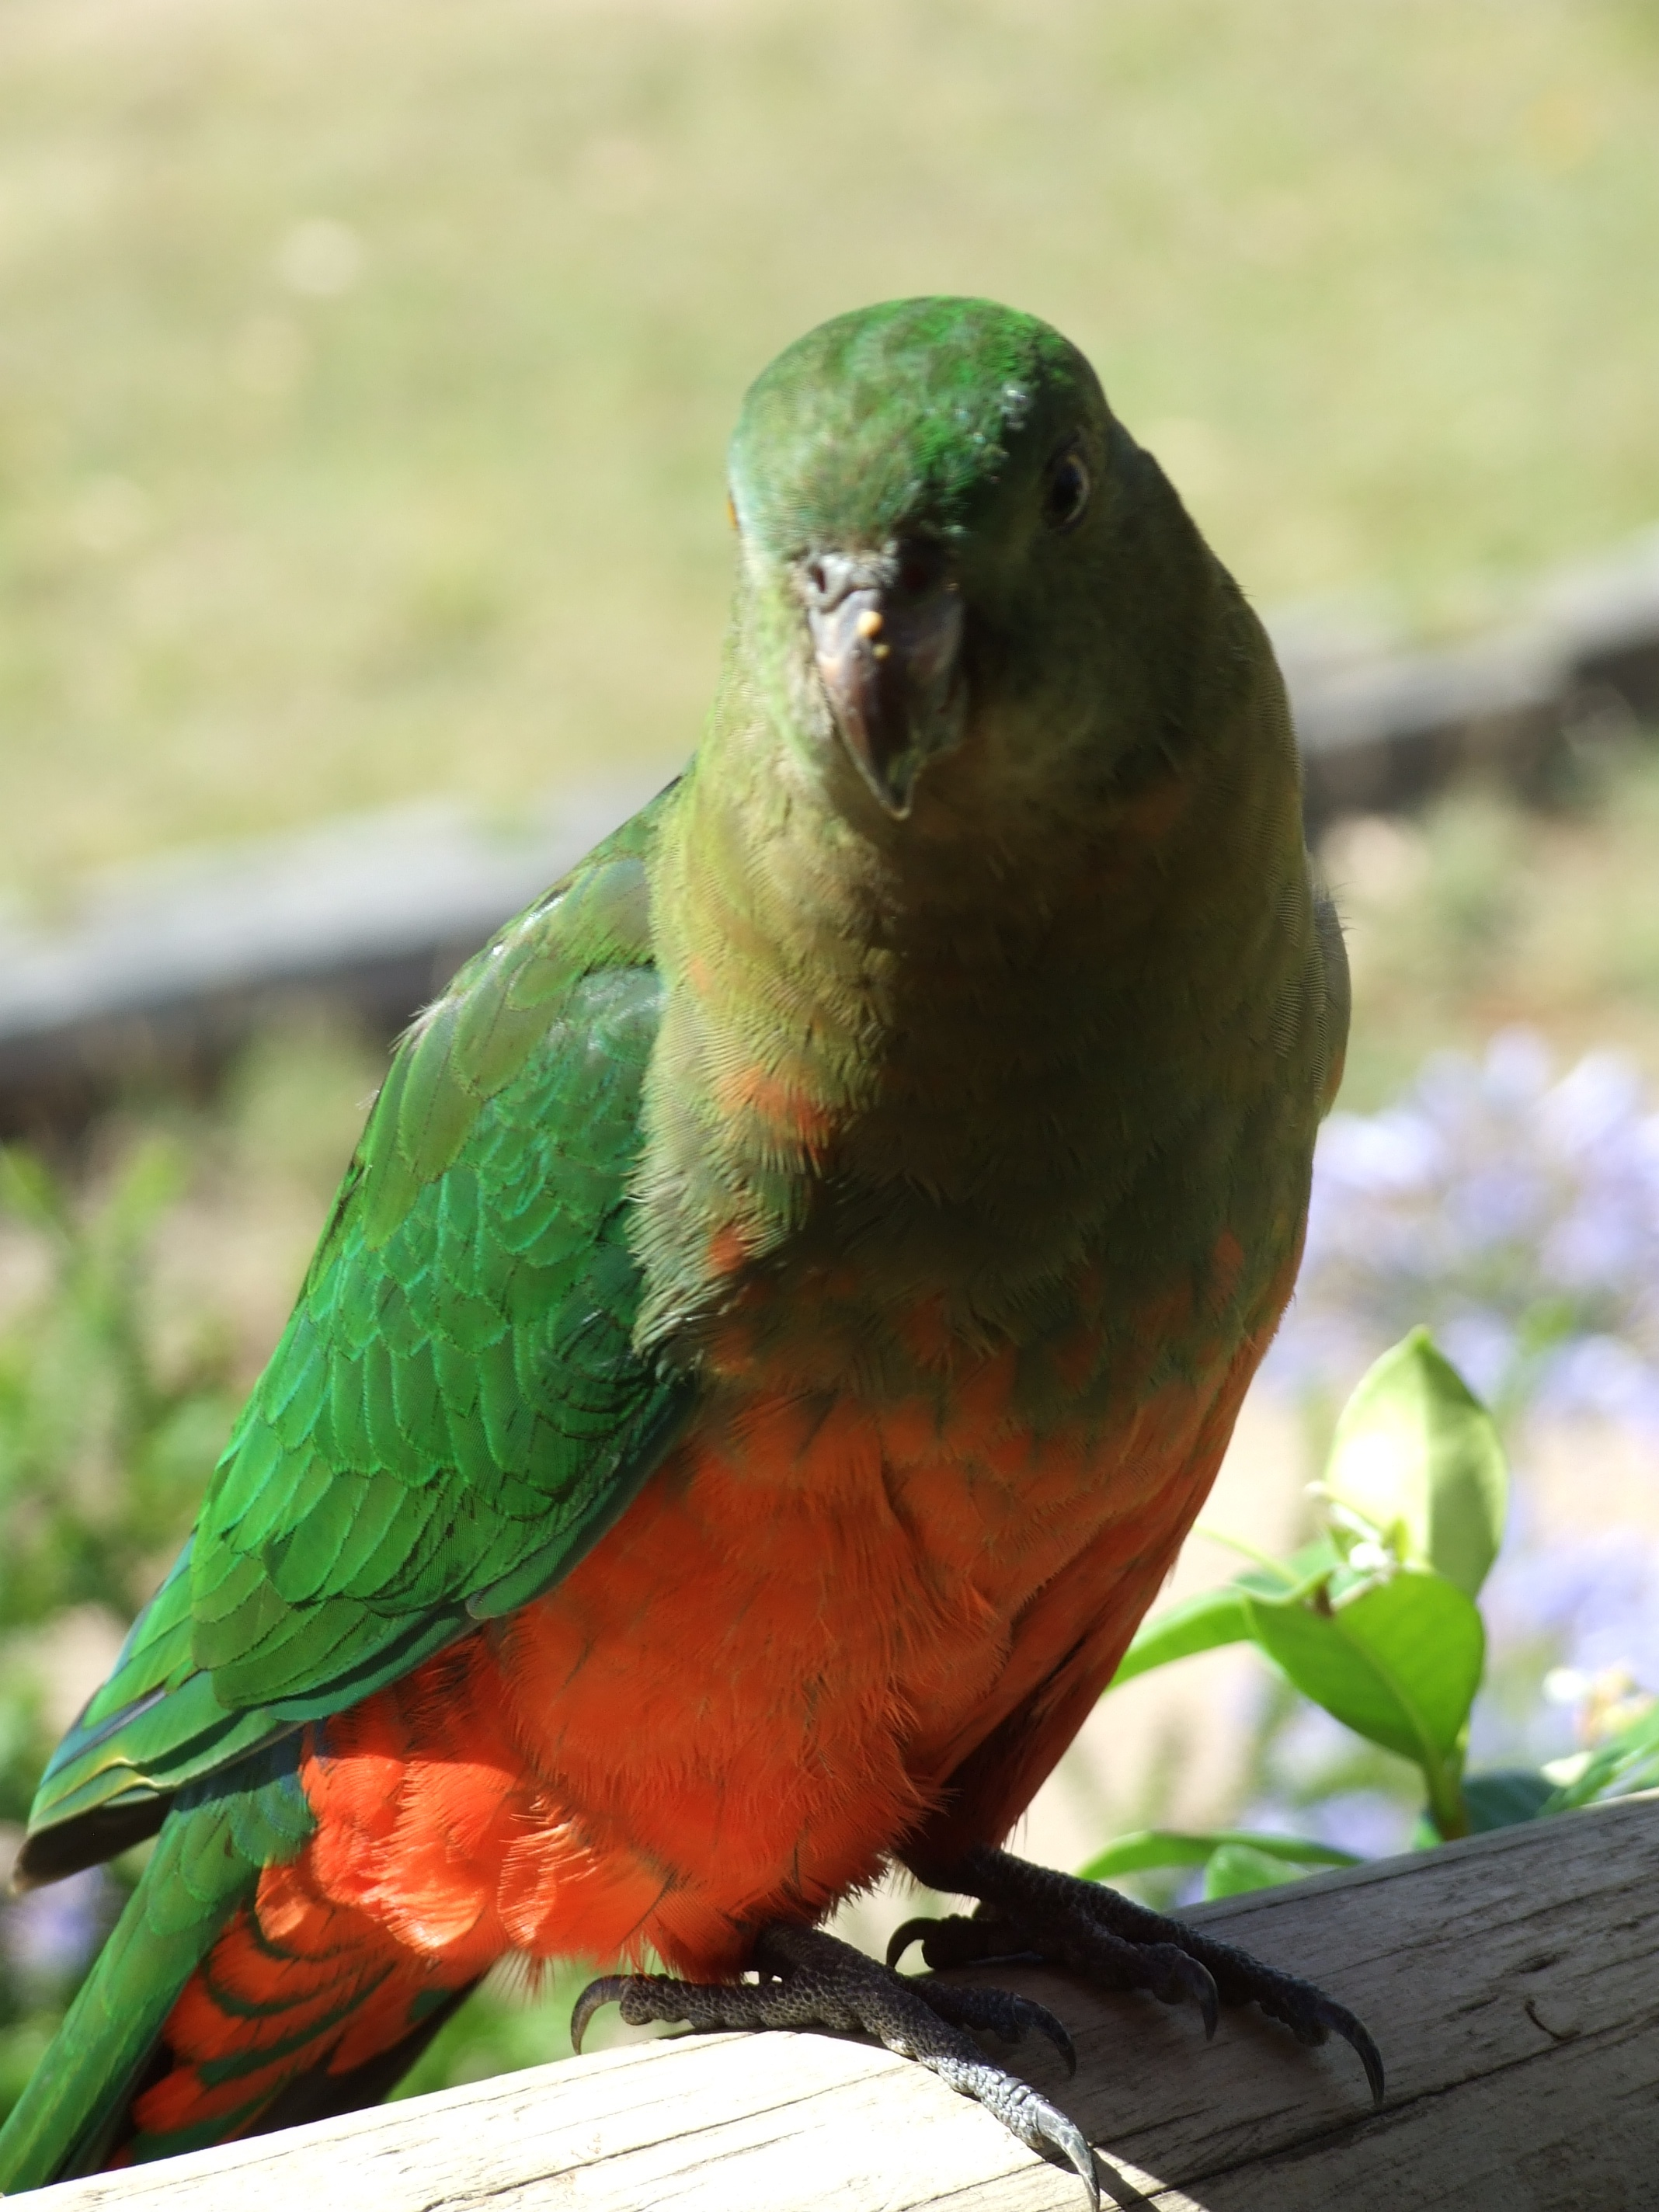 The Mighty King Parrot